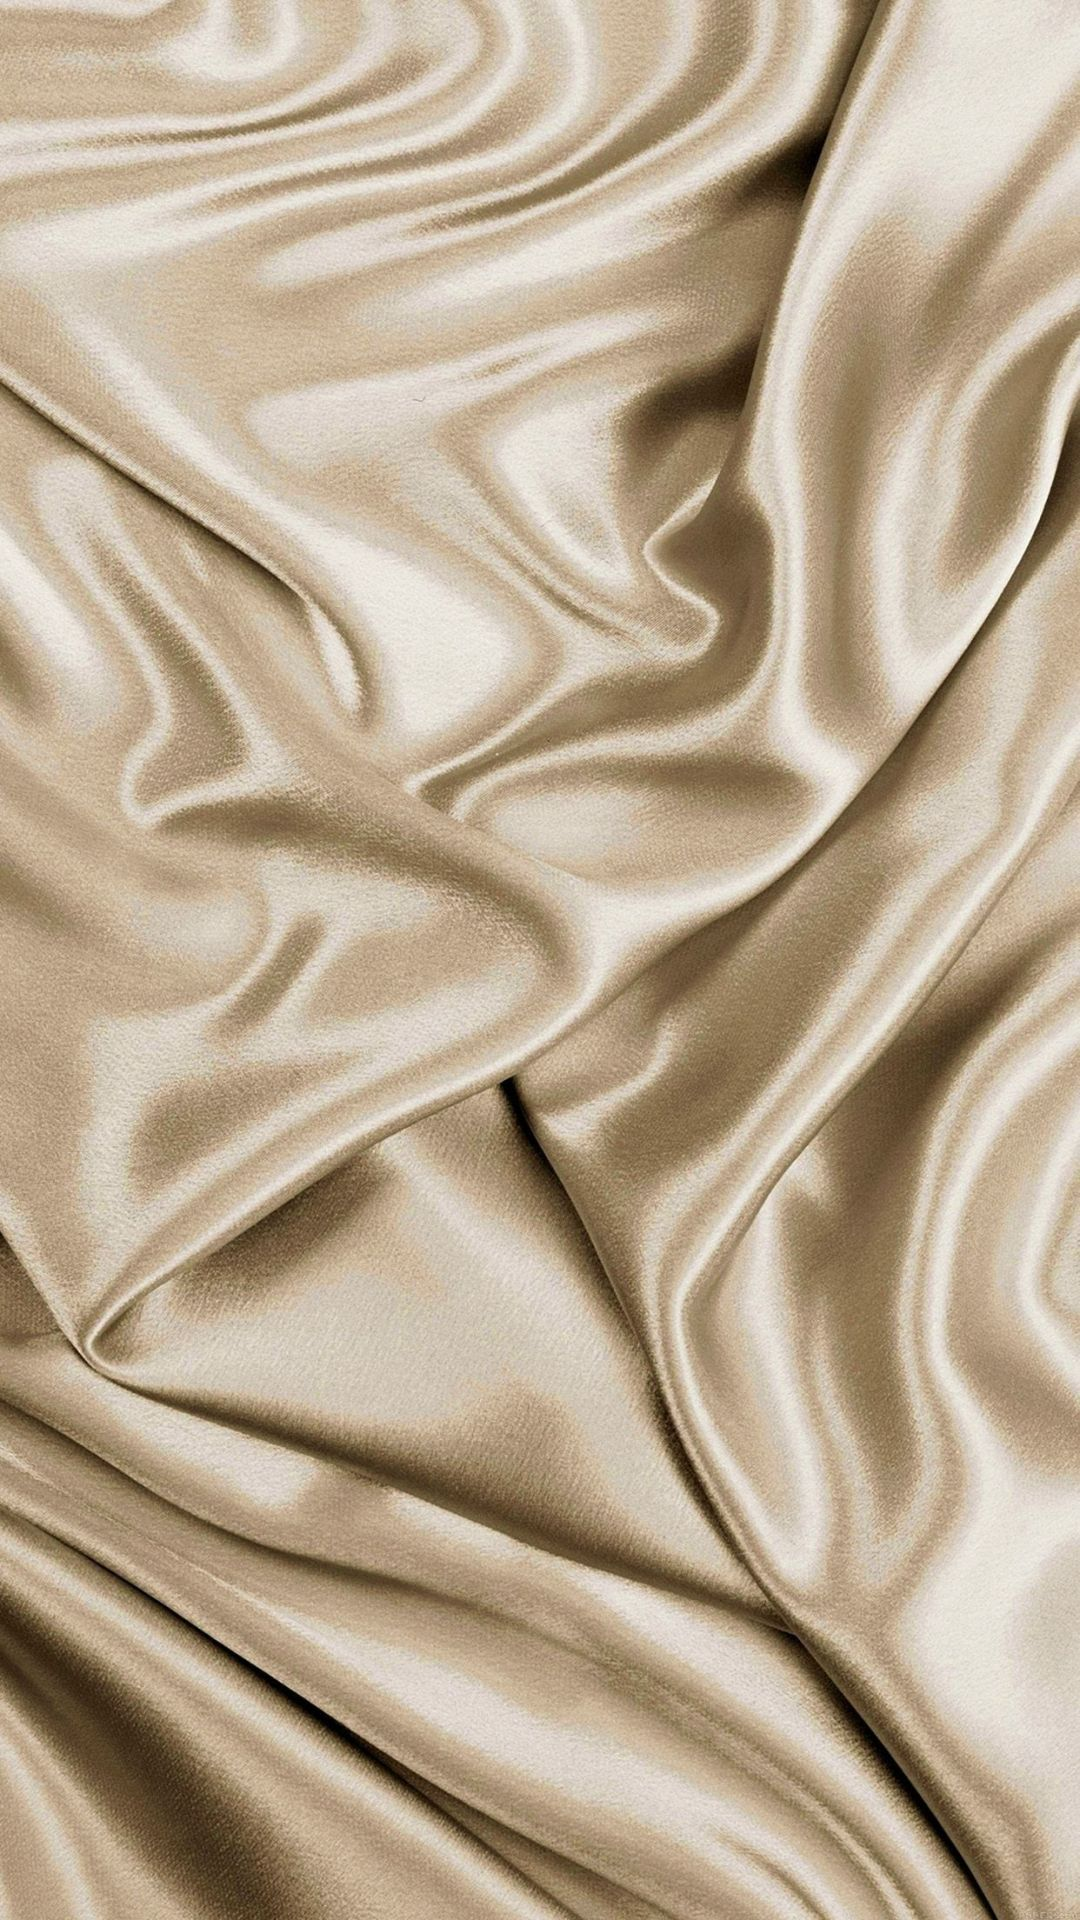 35 Beige Aesthetic Android Iphone Desktop Hd Backgrounds Wallpapers 1080p 4k 1242x2208 2021